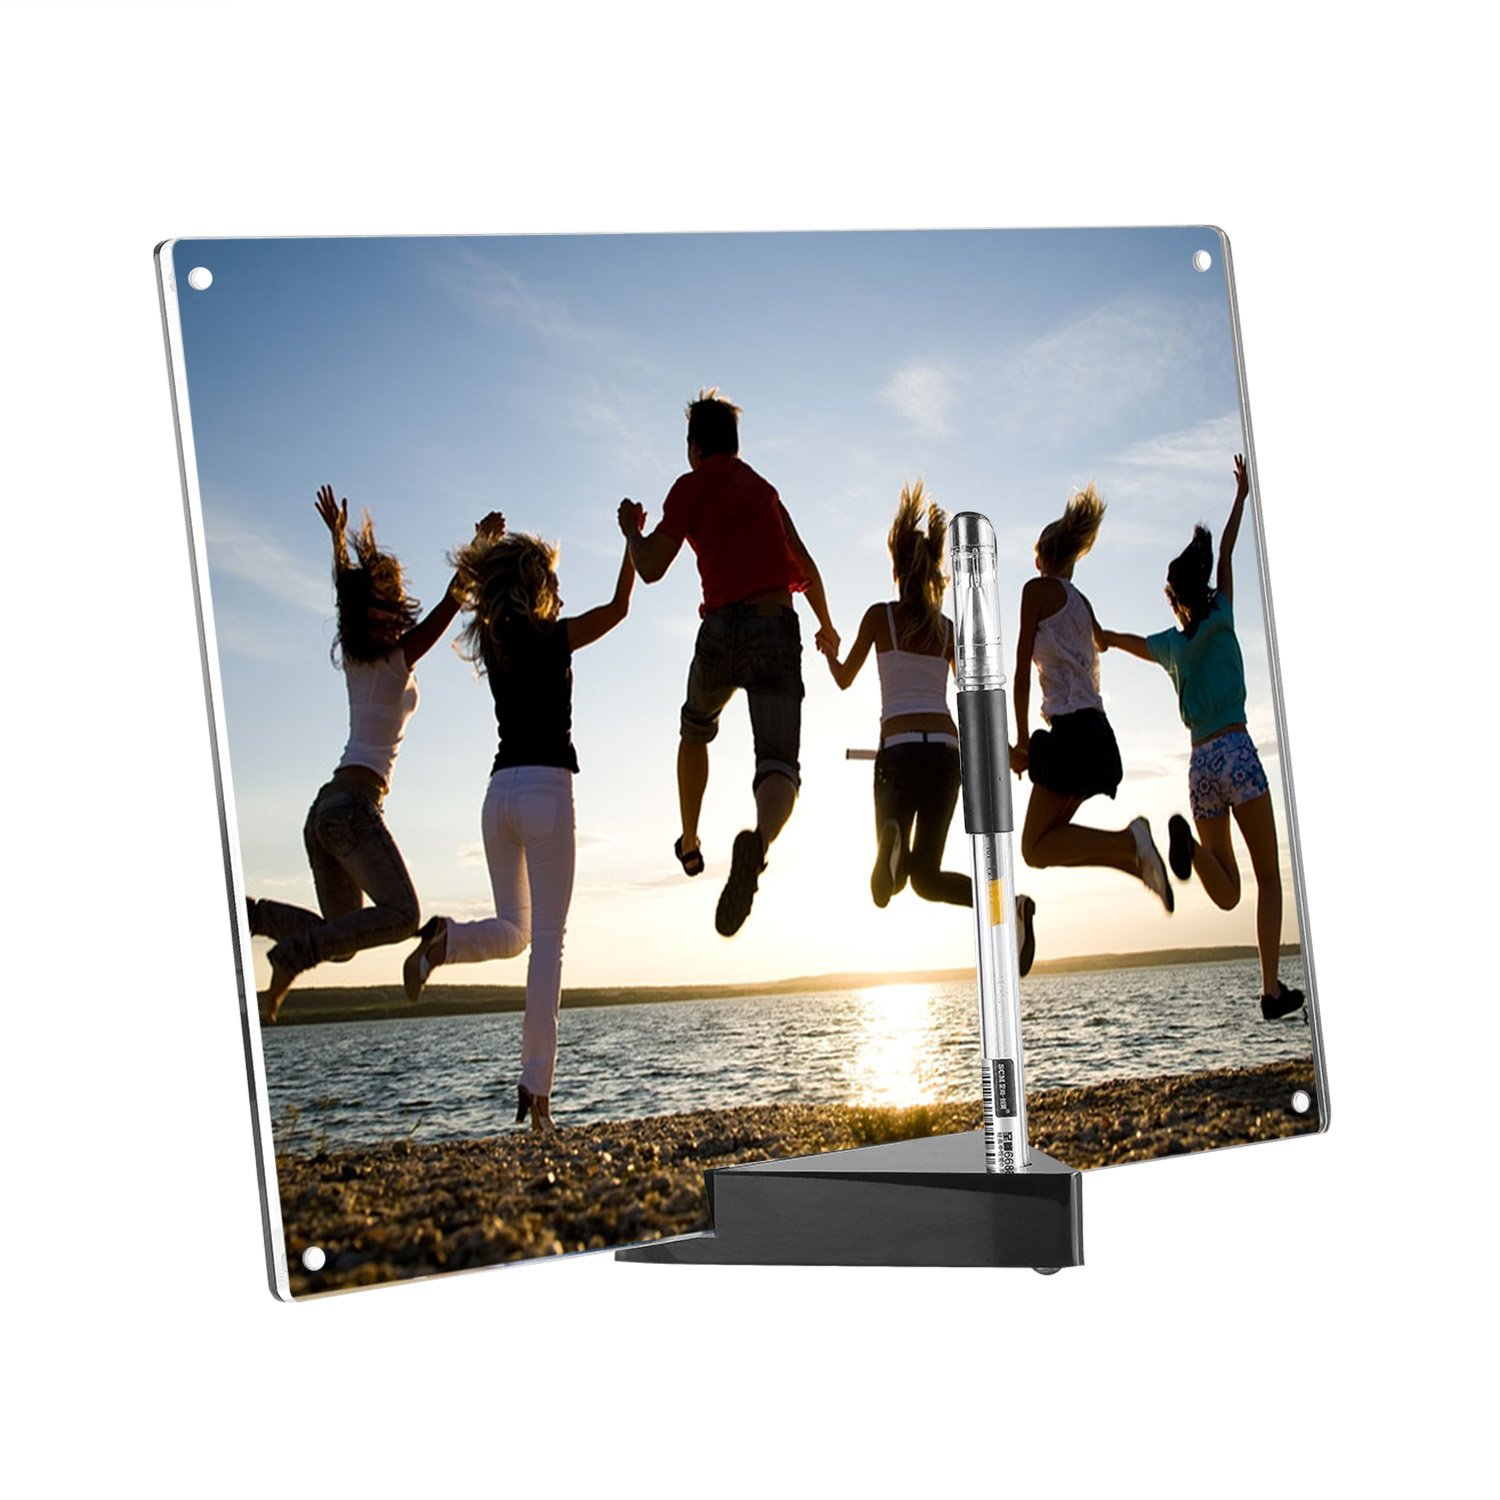 home office ki Acrylic Picture Frames, A4 Paper Size Magnetic Photo Frame with 20mm Thickness Stand Base Black and Clear H210mmxL297mm (A4 8.3x11.7 inch Triangle Base)